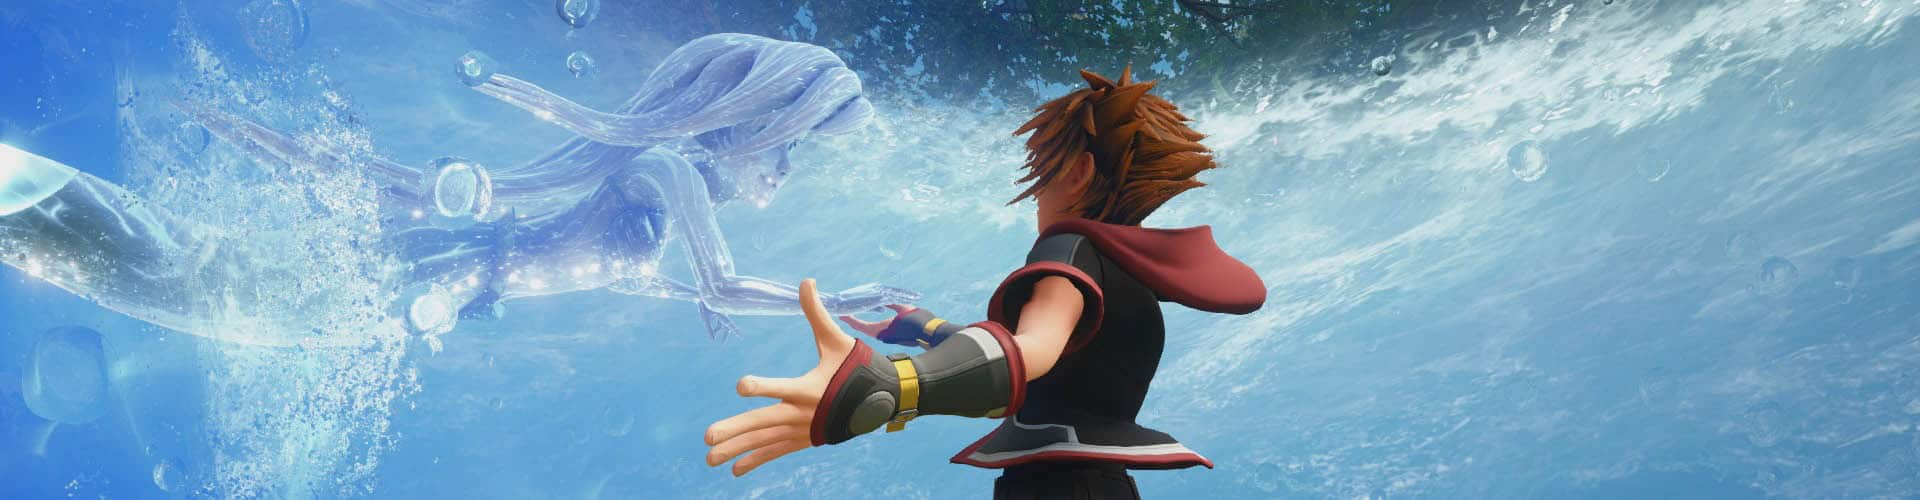 Kingdom Hearts 3 Release Date, Trailer, News, and Rumors